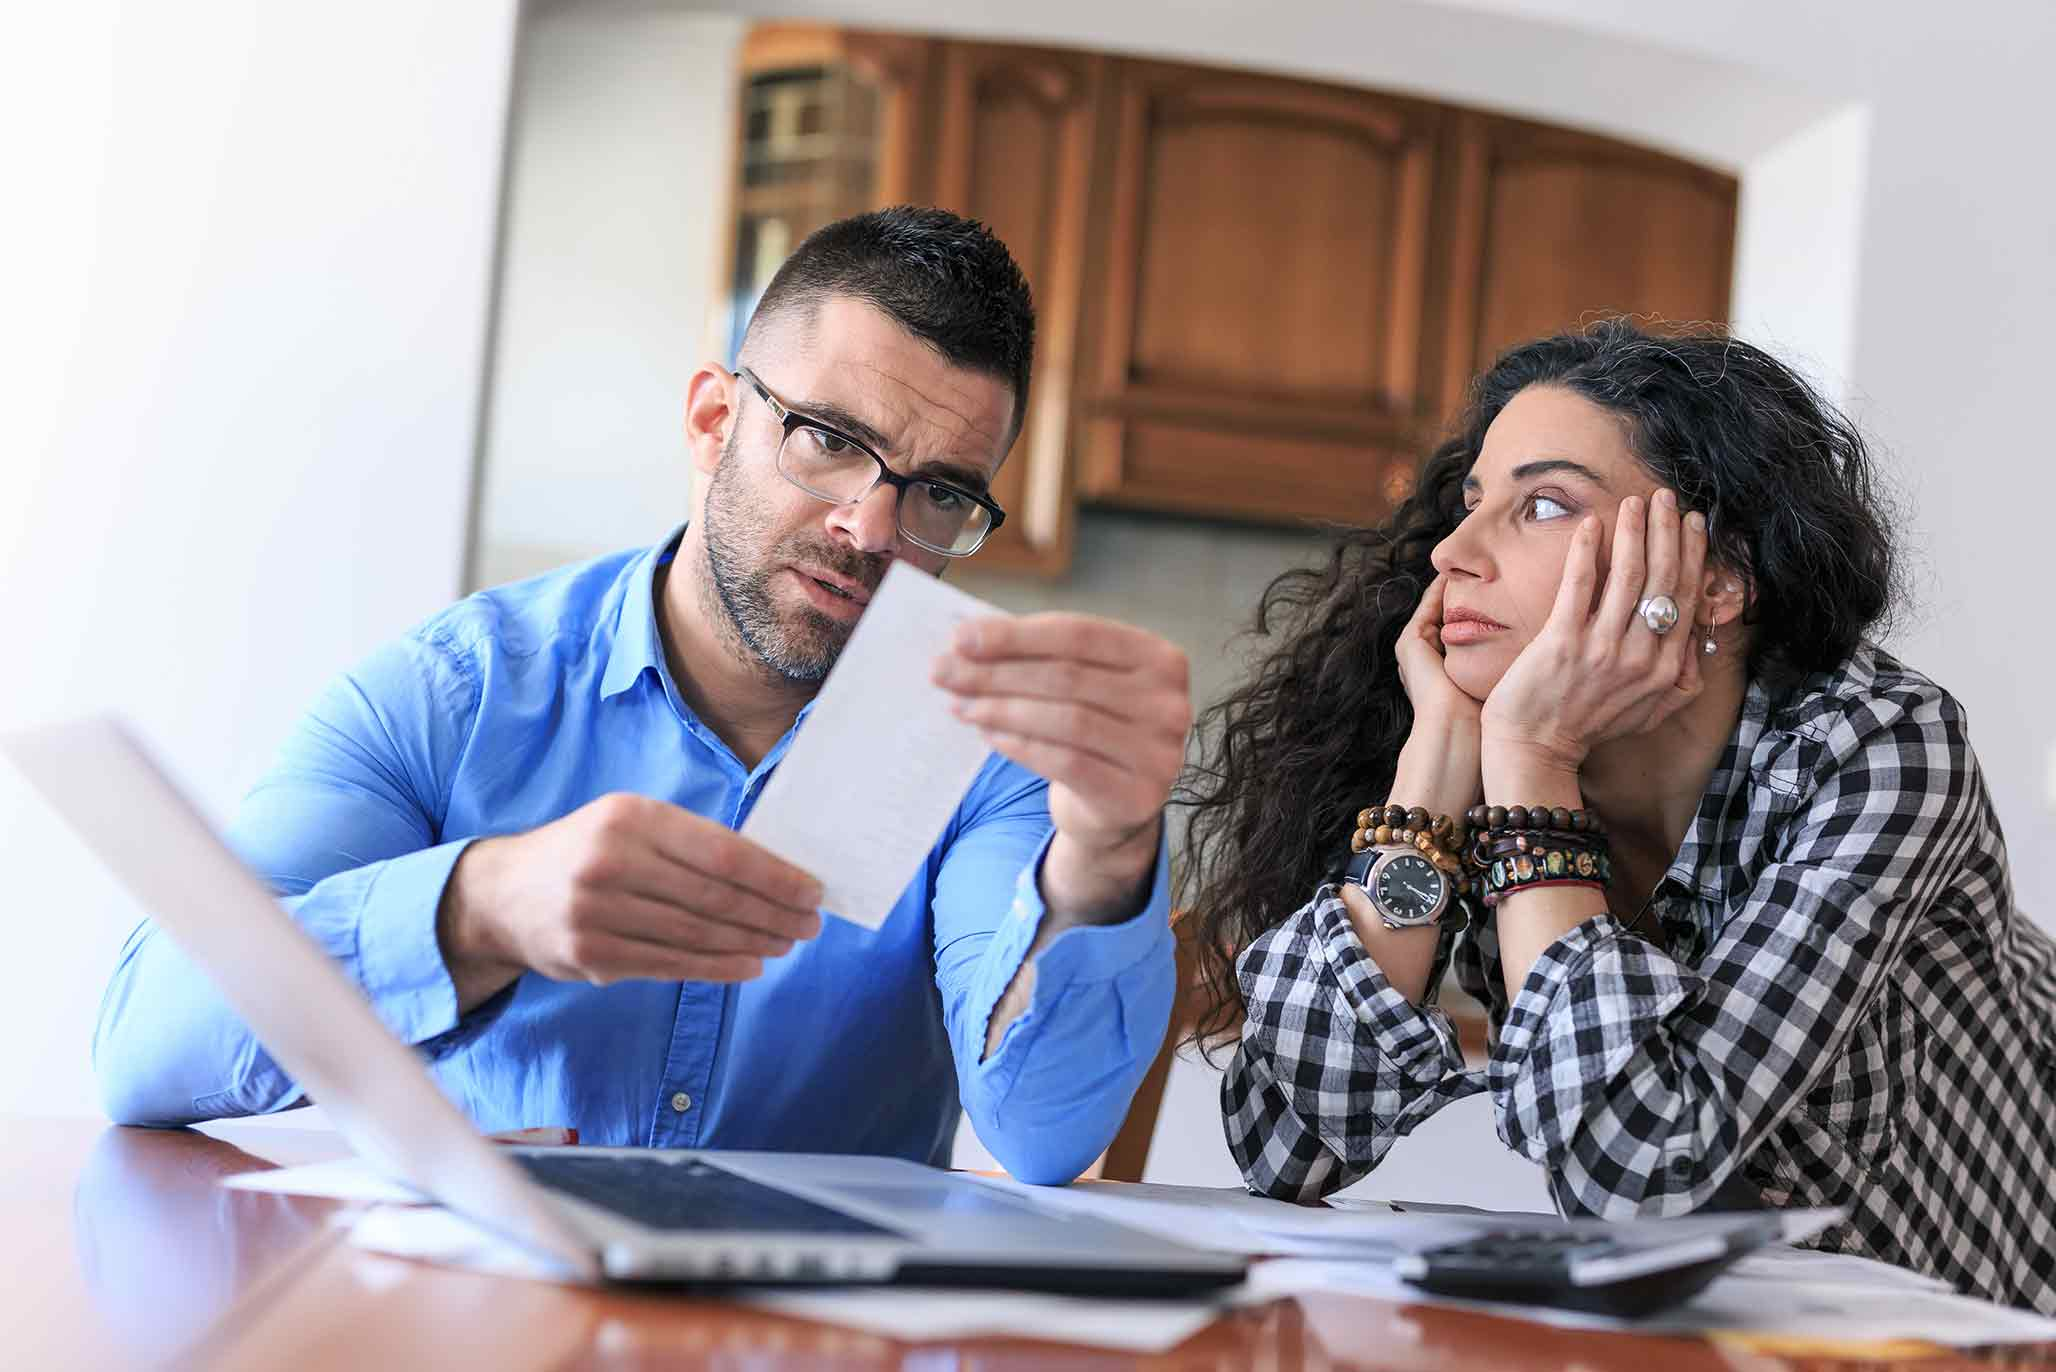 Are We Conveniently Relying on Our Men for Financial Decisions?